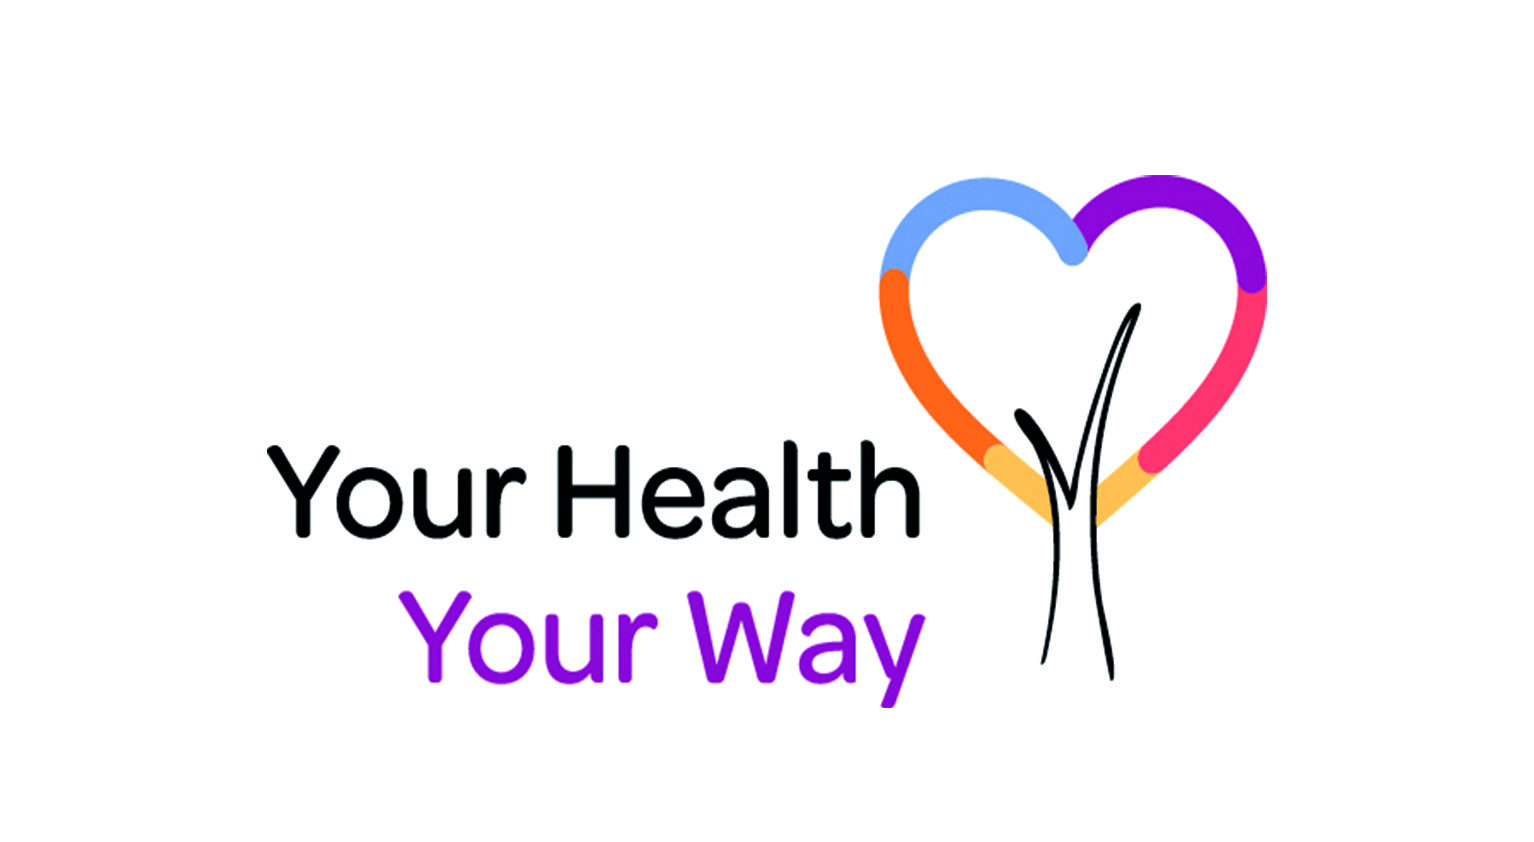 Your Health, Your Way organisation logo